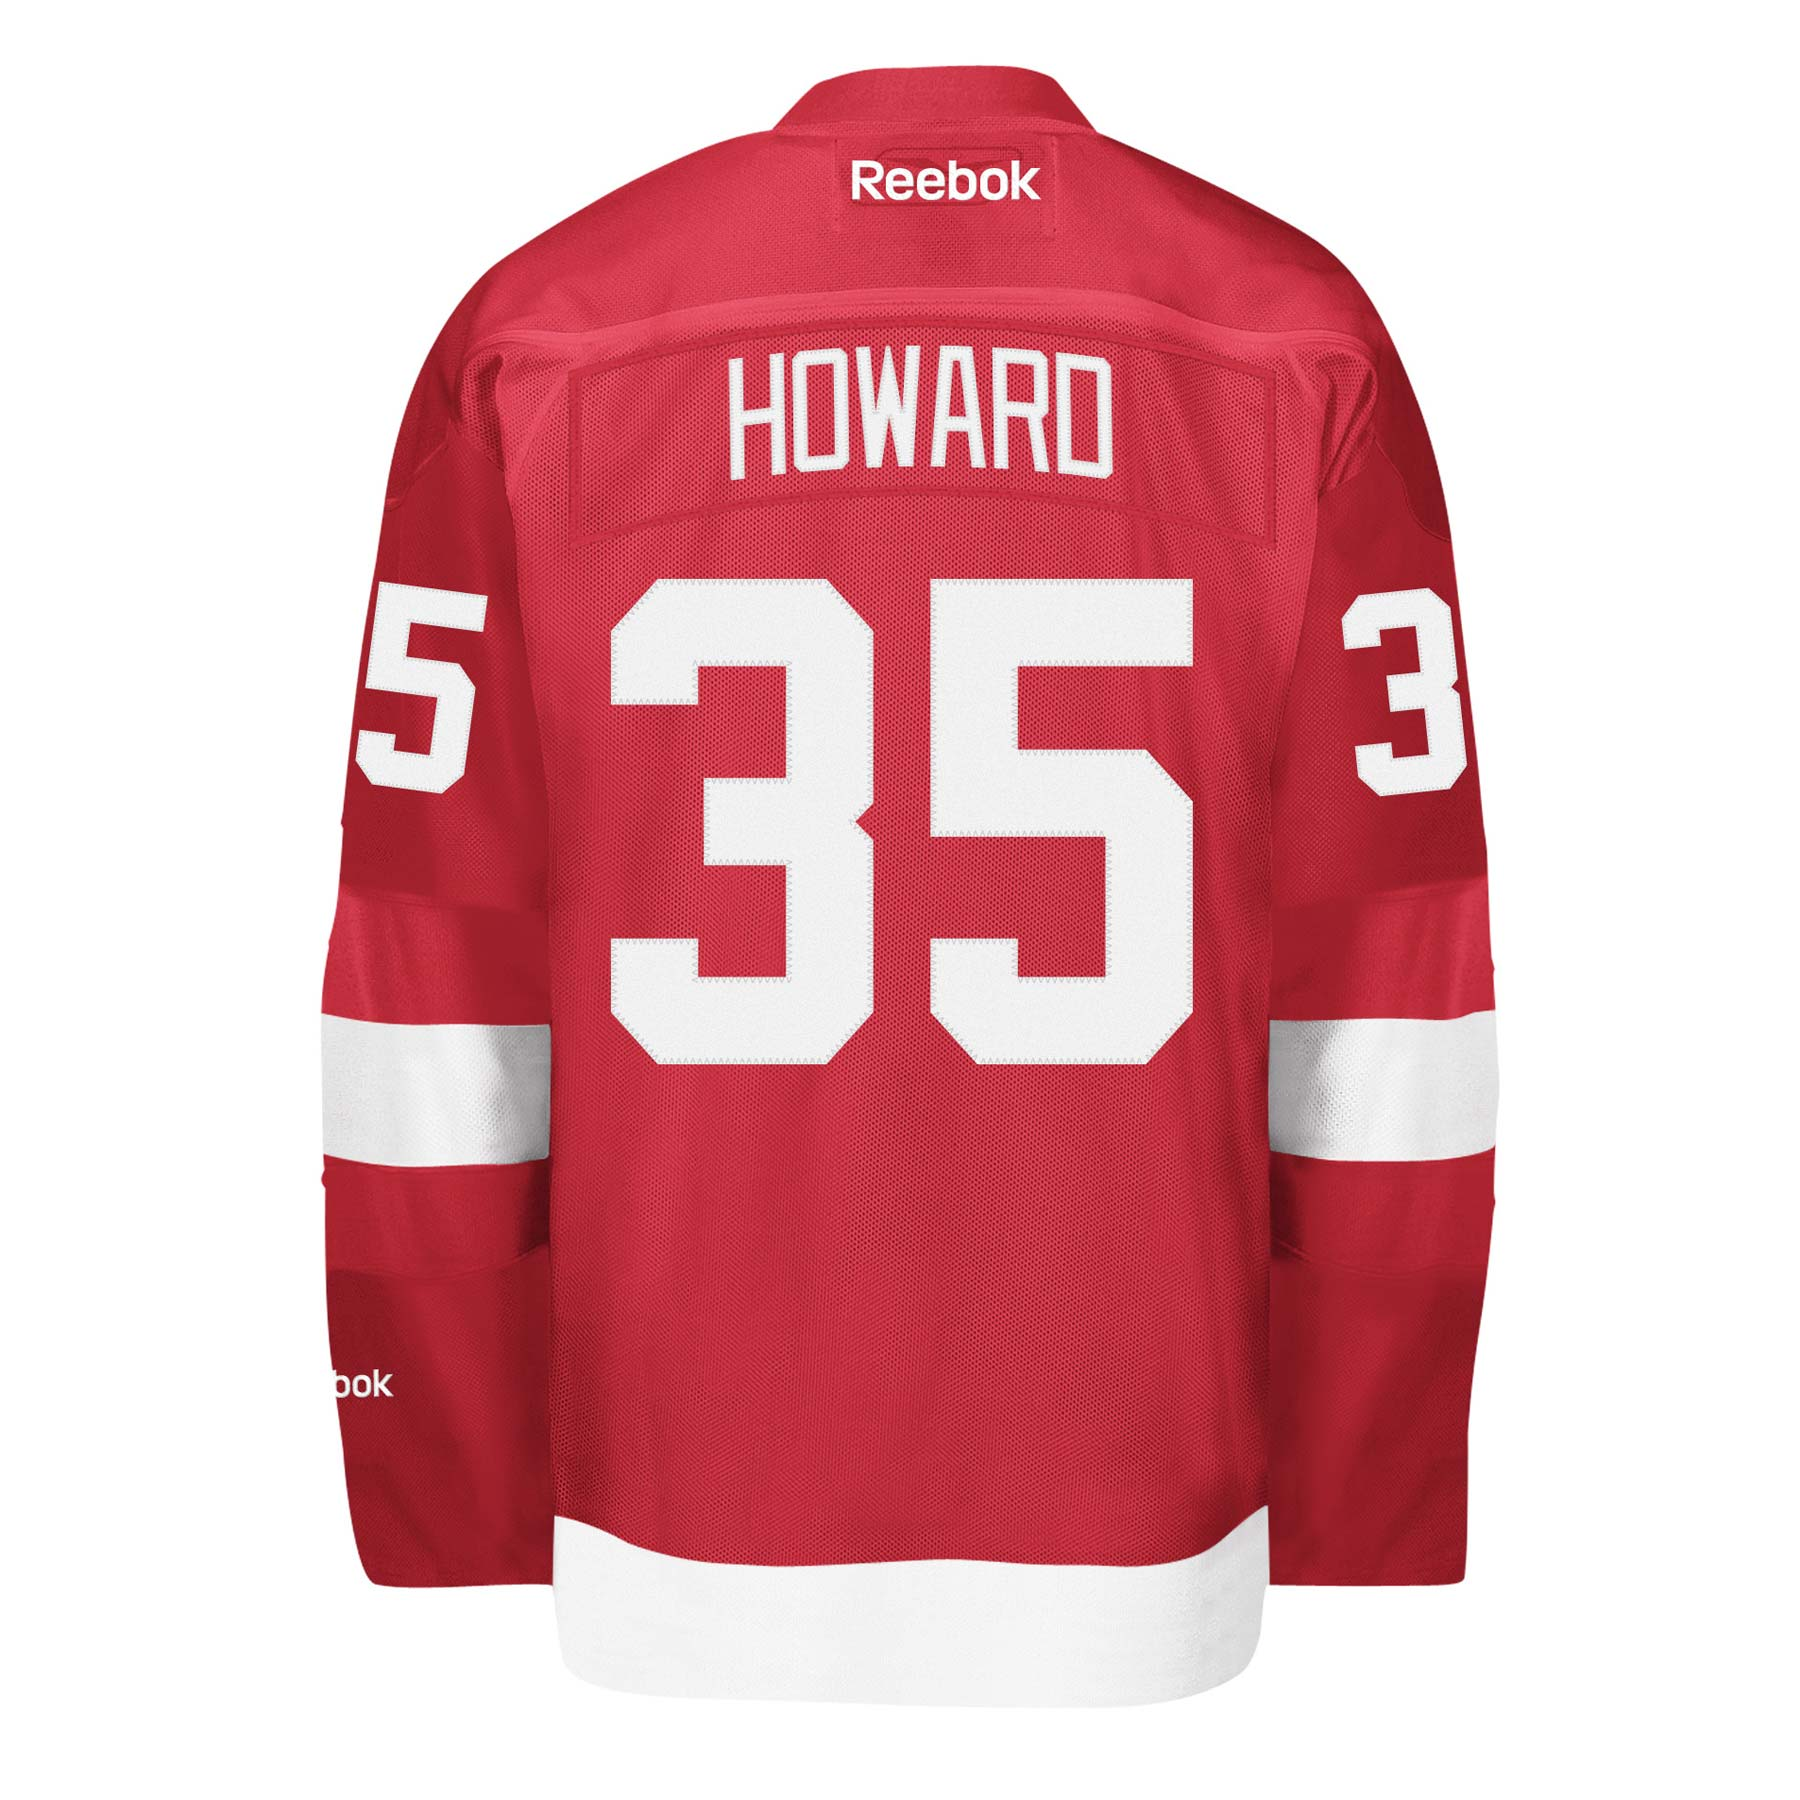 ... new style jimmy howard detroit red wings reebok premier replica home nhl  hockey jersey 9b86c 6e99a fa7164bbb